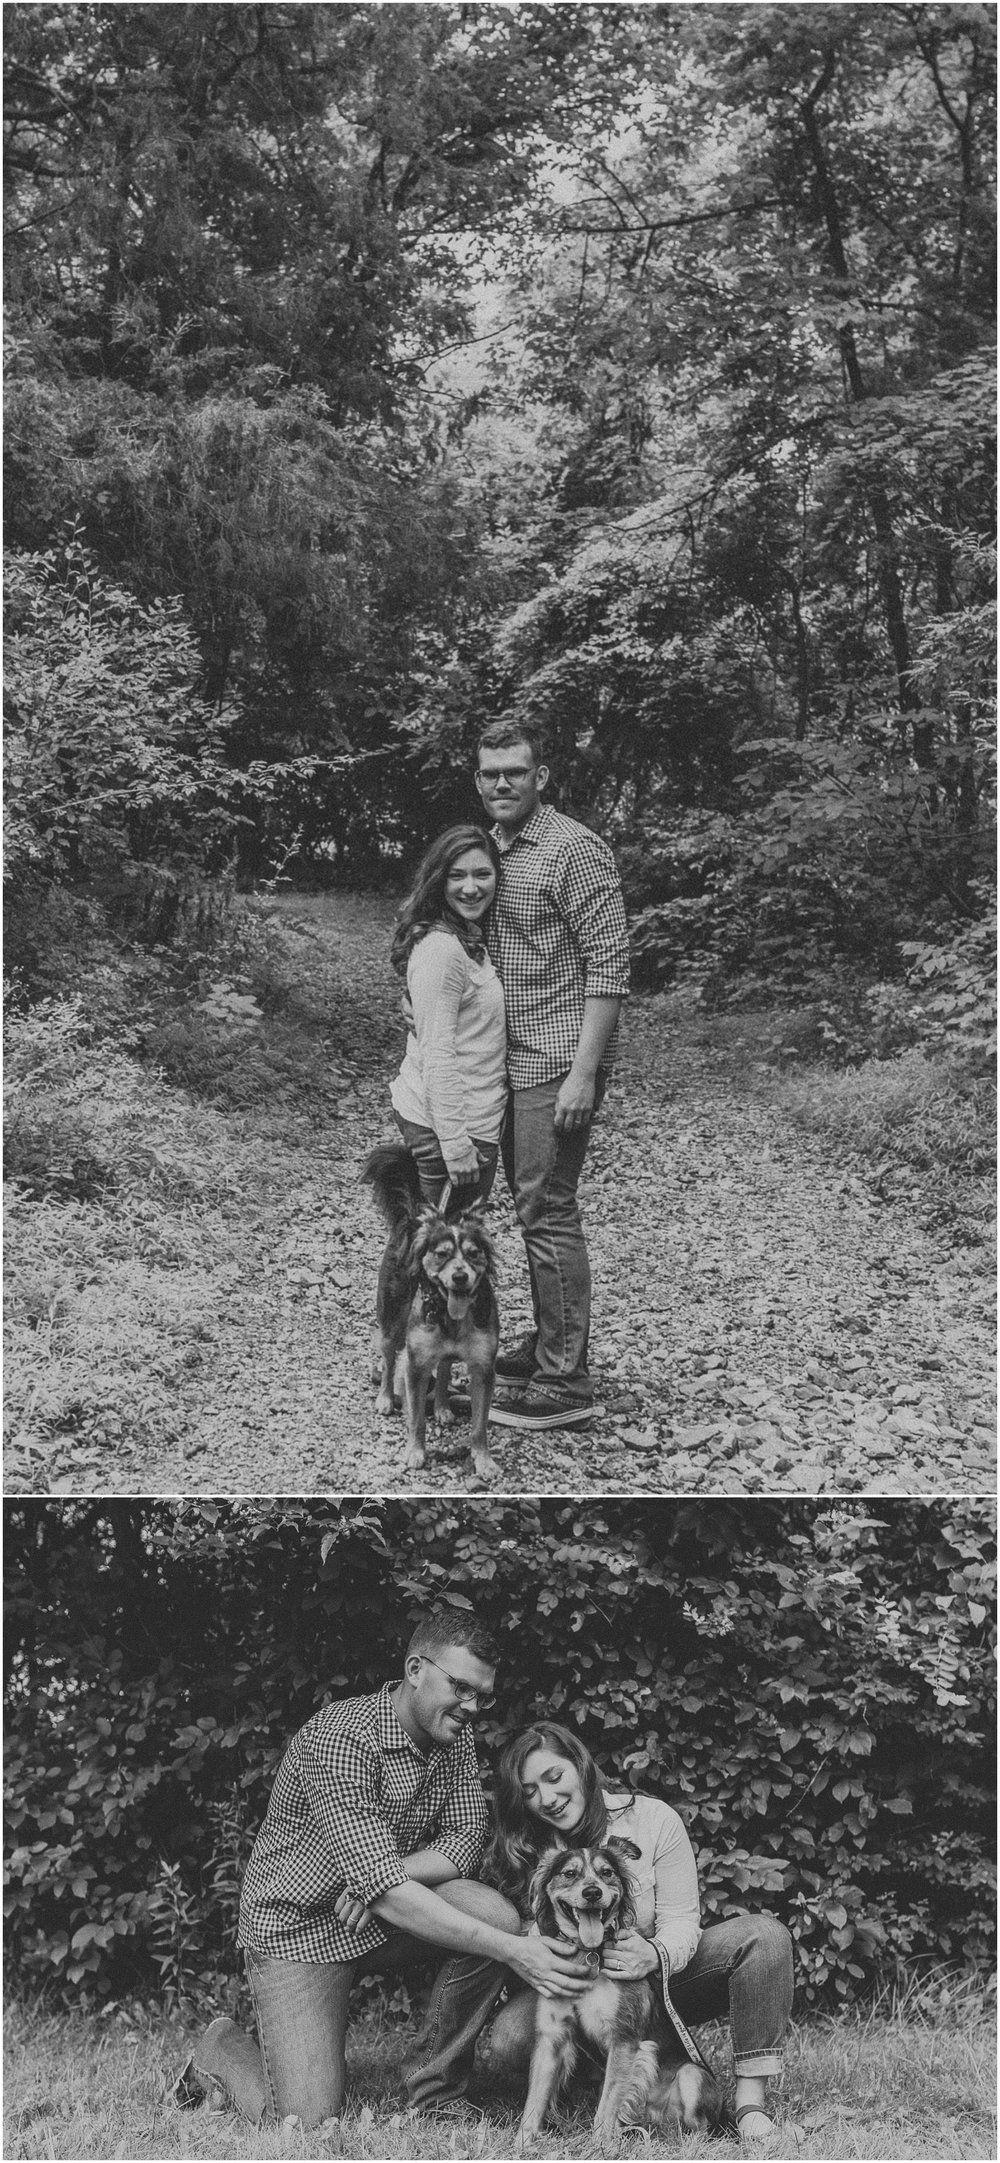 gifford pinchot state park-engagement-anniversary-photo session-outdoor photos-husband-wife-central pennsylvania_0297.jpg